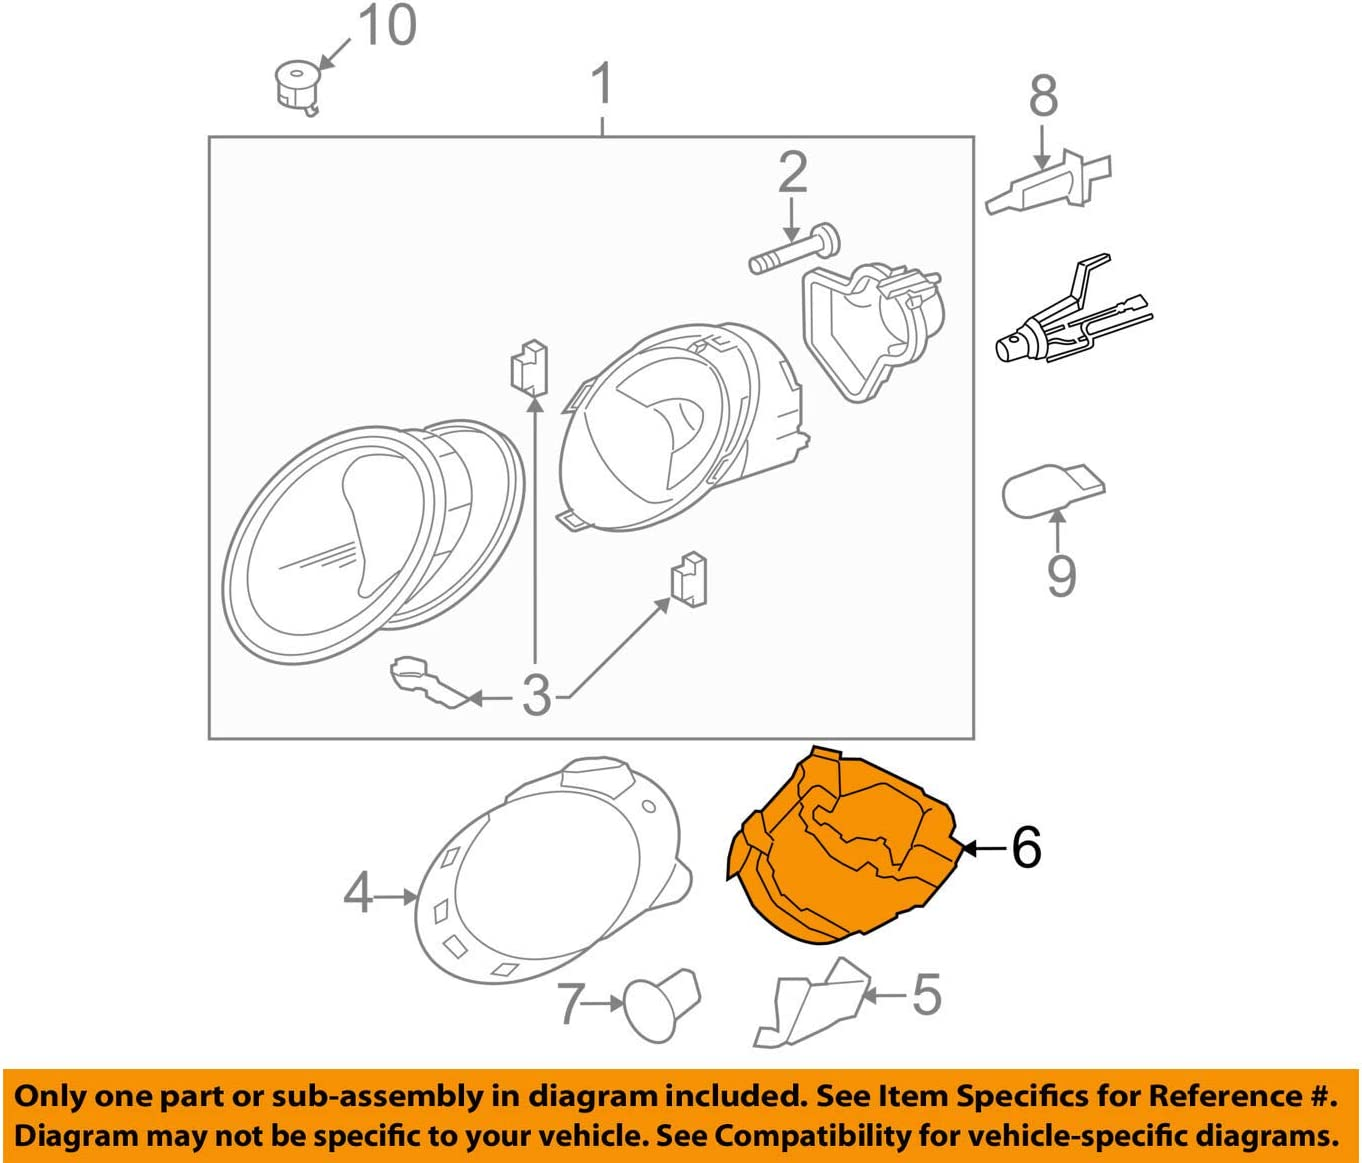 2006 vw beetle fuse diagram amazon com genuine vw beetle 2006 2010 headlight mounting housing 2006 volkswagen beetle wiring diagram genuine vw beetle 2006 2010 headlight